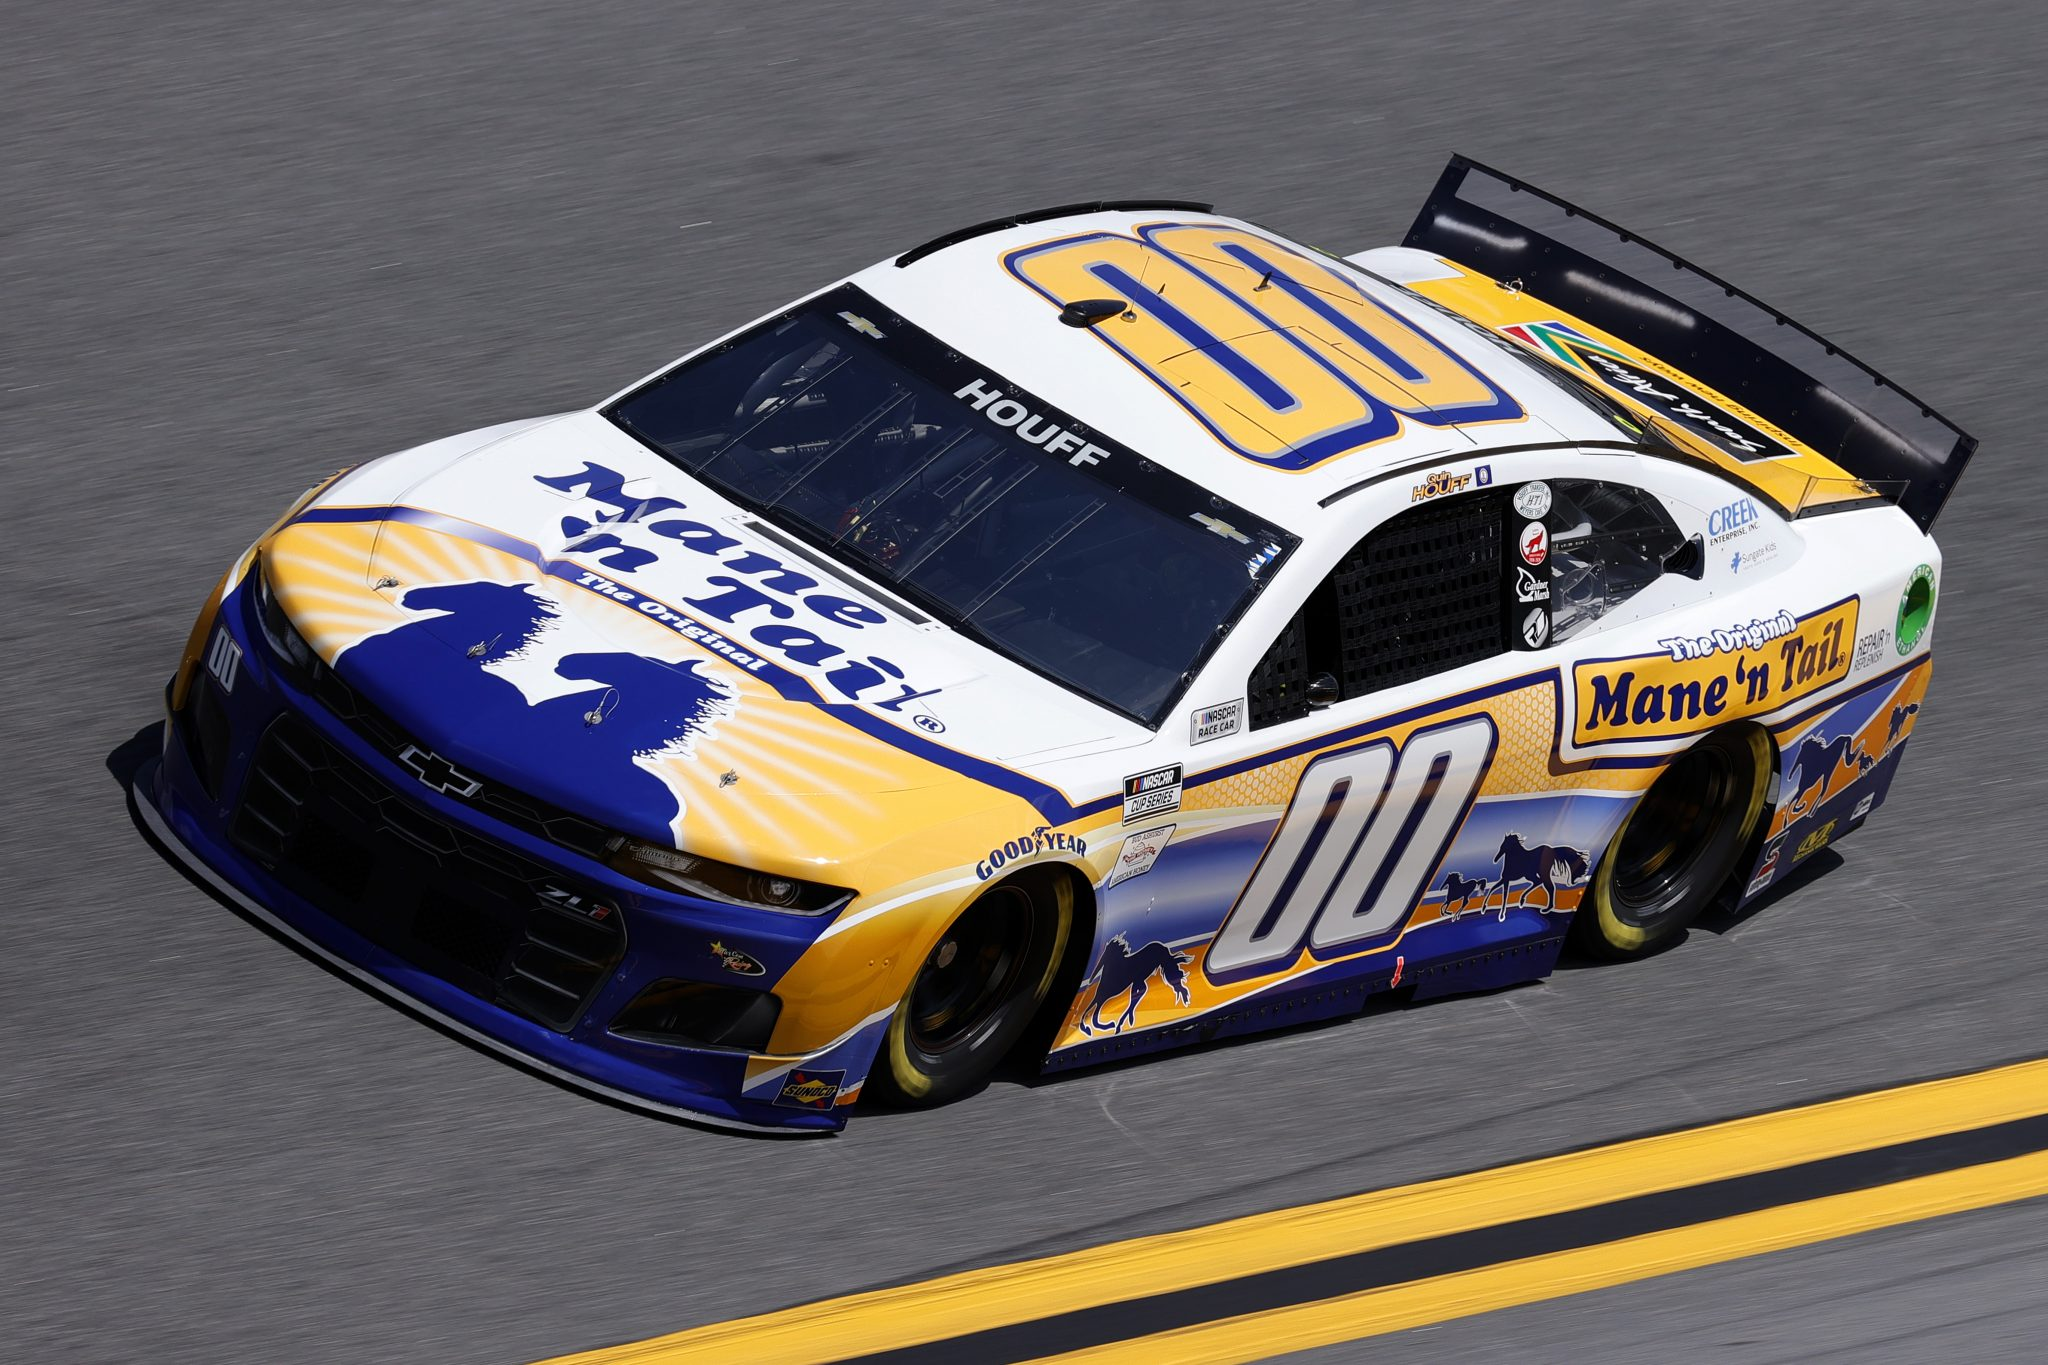 DAYTONA BEACH, FLORIDA - FEBRUARY 10: Quin Houff, driver of the #00 Mane 'n Tail Chevrolet, drives during practice for the NASCAR Cup Series 63rd Annual Daytona 500 at Daytona International Speedway on February 10, 2021 in Daytona Beach, Florida. (Photo by Jared C. Tilton/Getty Images) | Getty Images